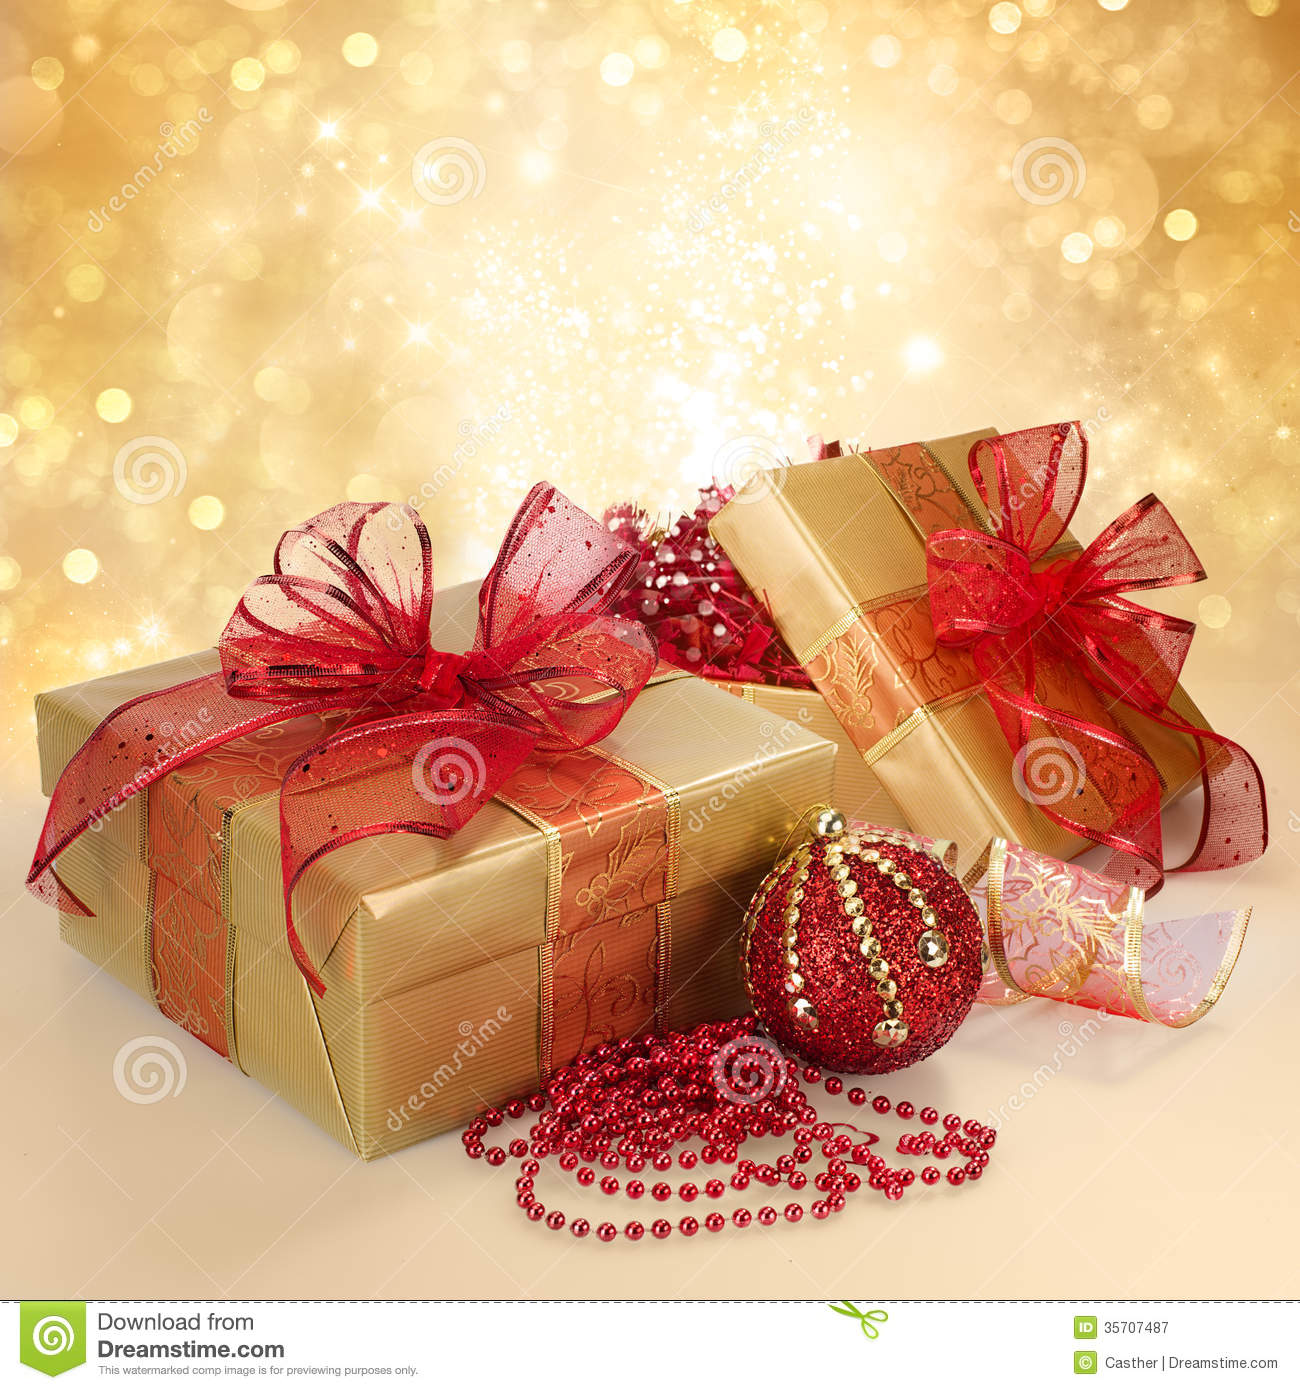 christmas gift box and decorations in gold and red - Christmas Present Decoration